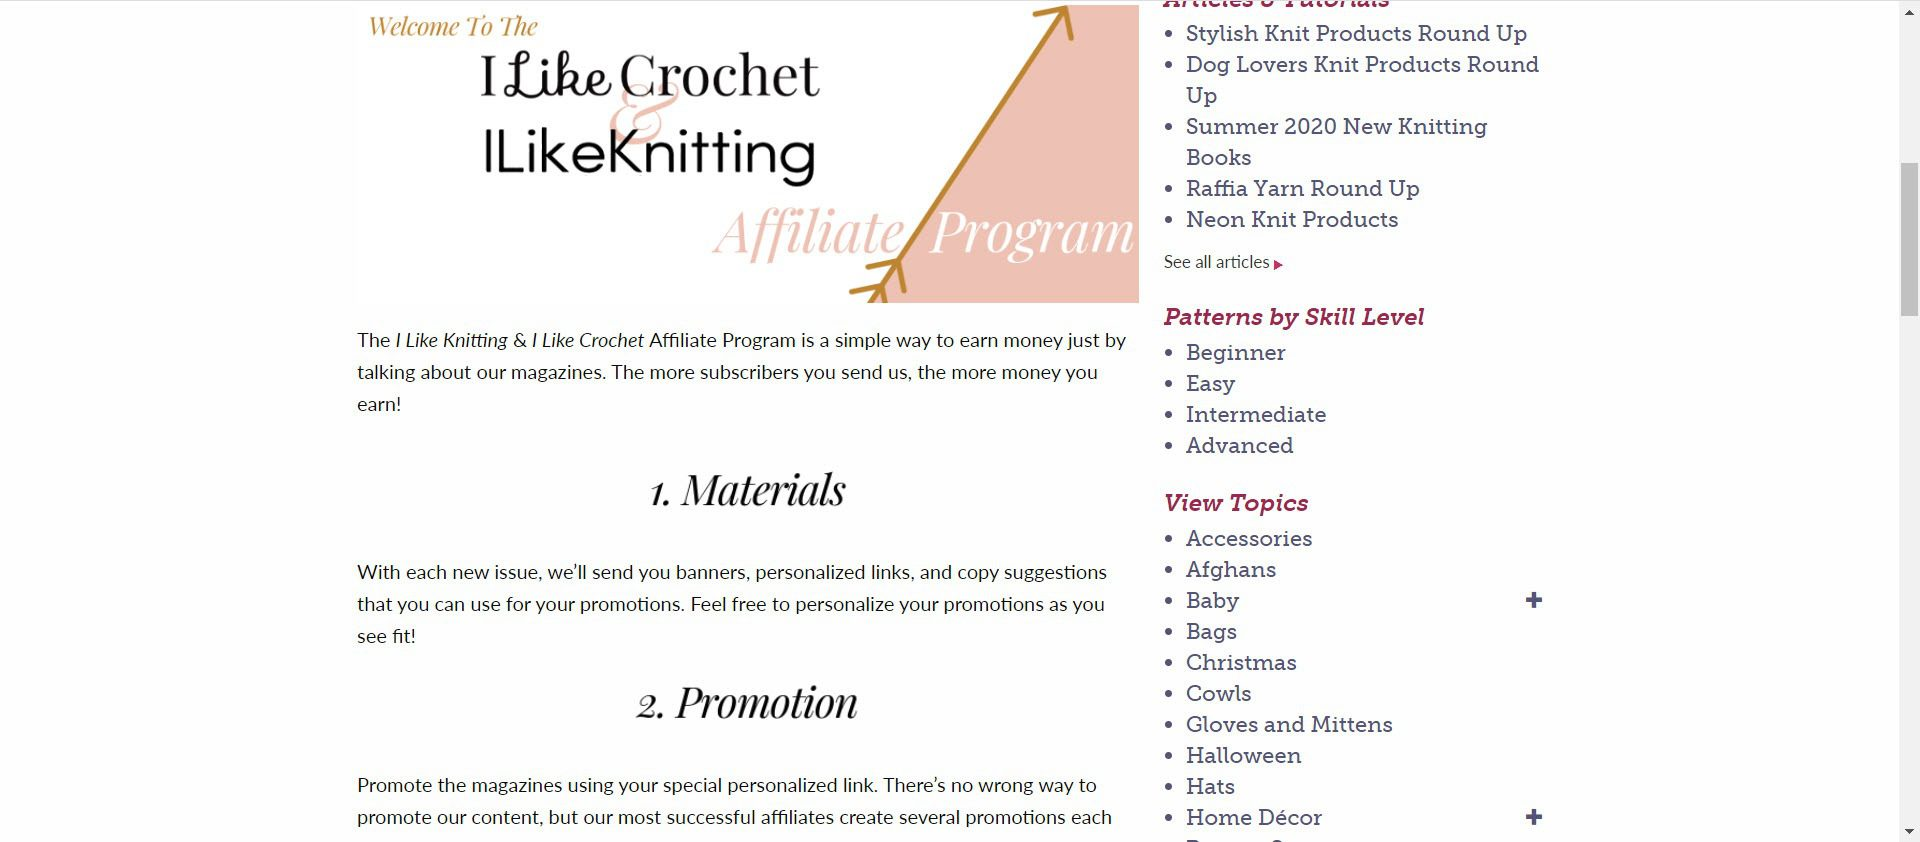 Knitting Affiliate Programs - I like knitting affiliate